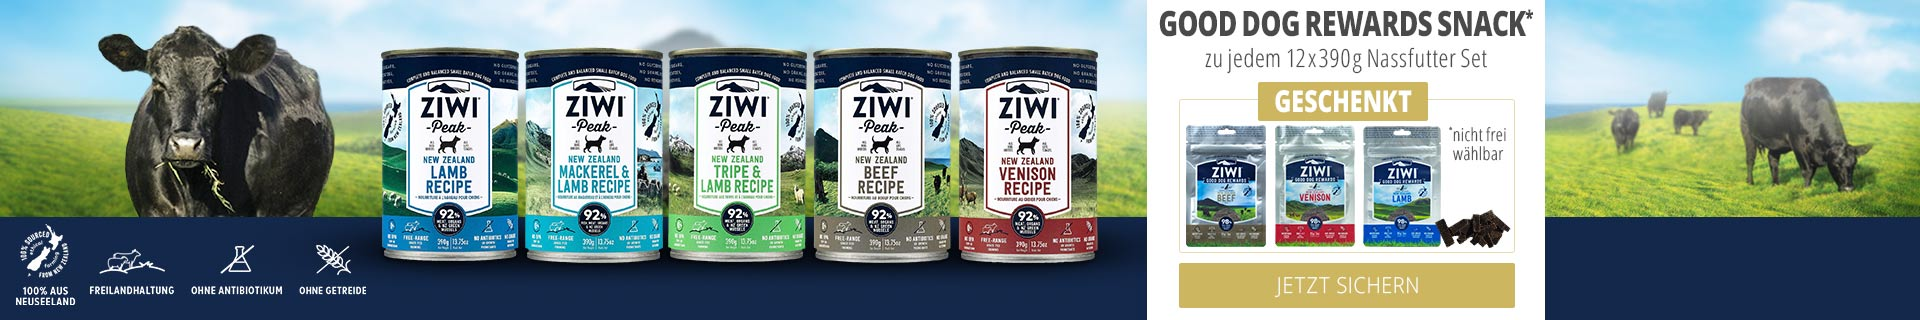 Ziwi Nassfutter Aktion mit Good Dog Rewards Snack Geschenkt